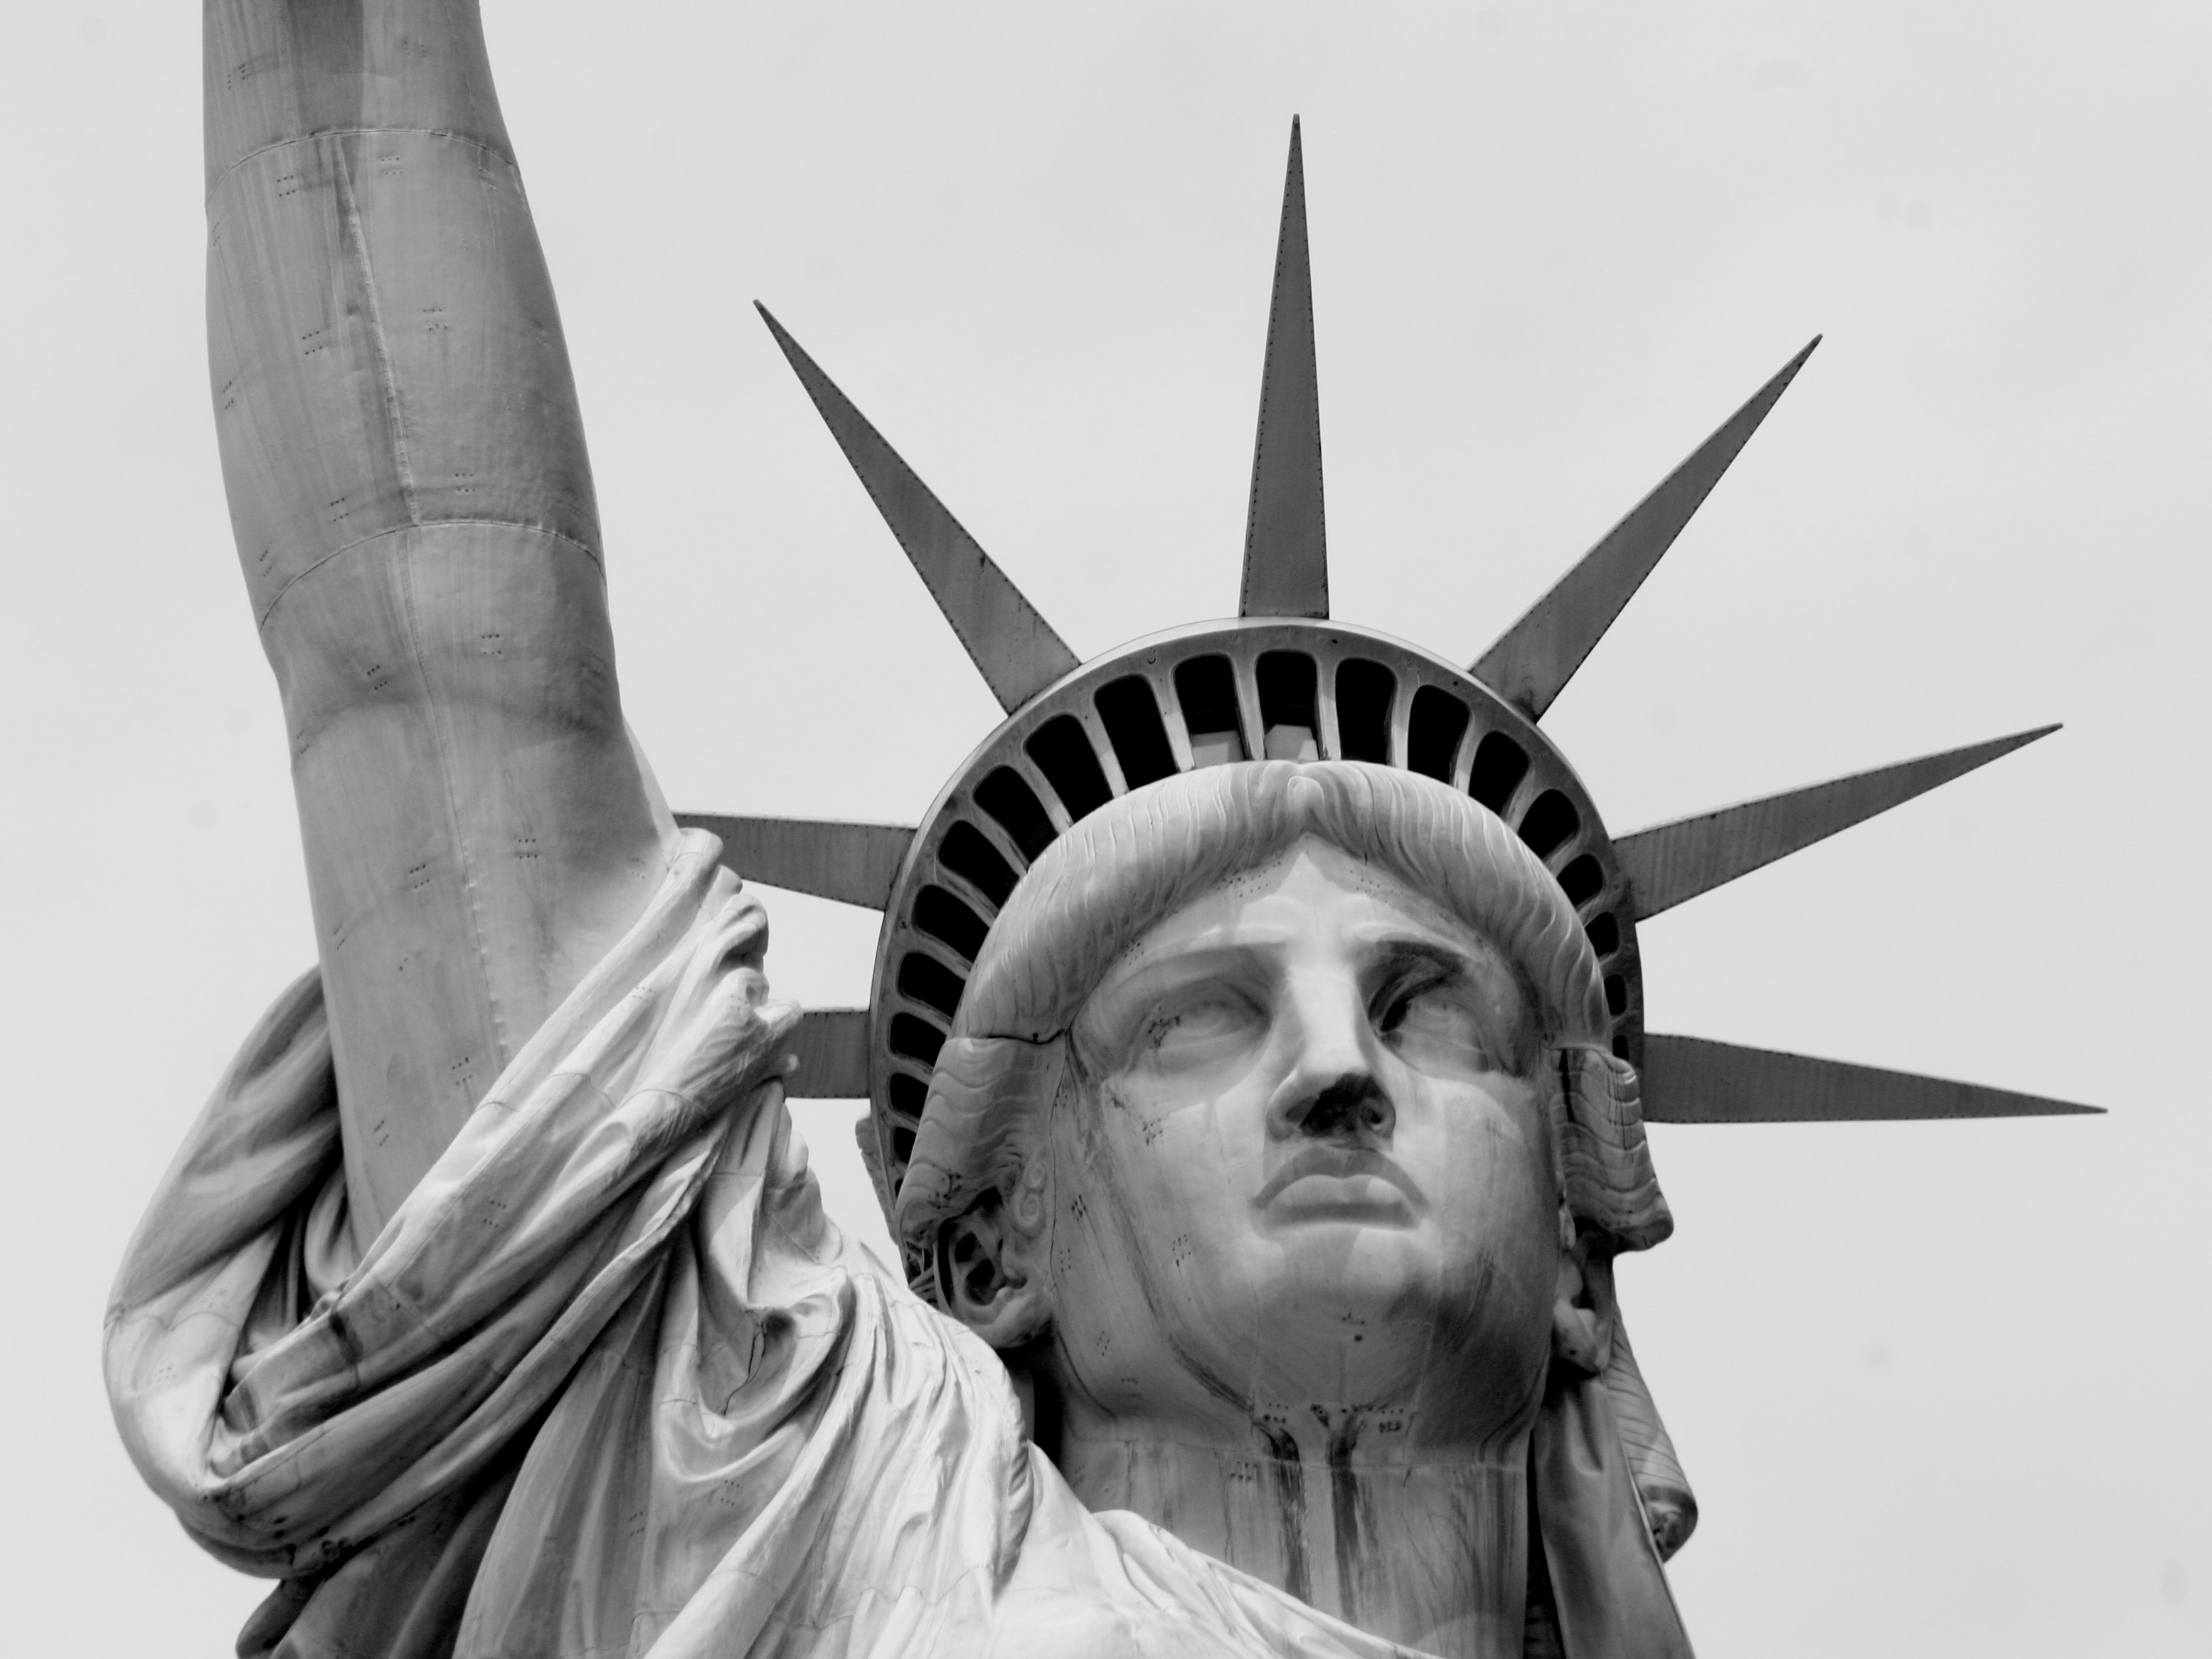 Black and white closeup photo of the Statue of Liberty's face